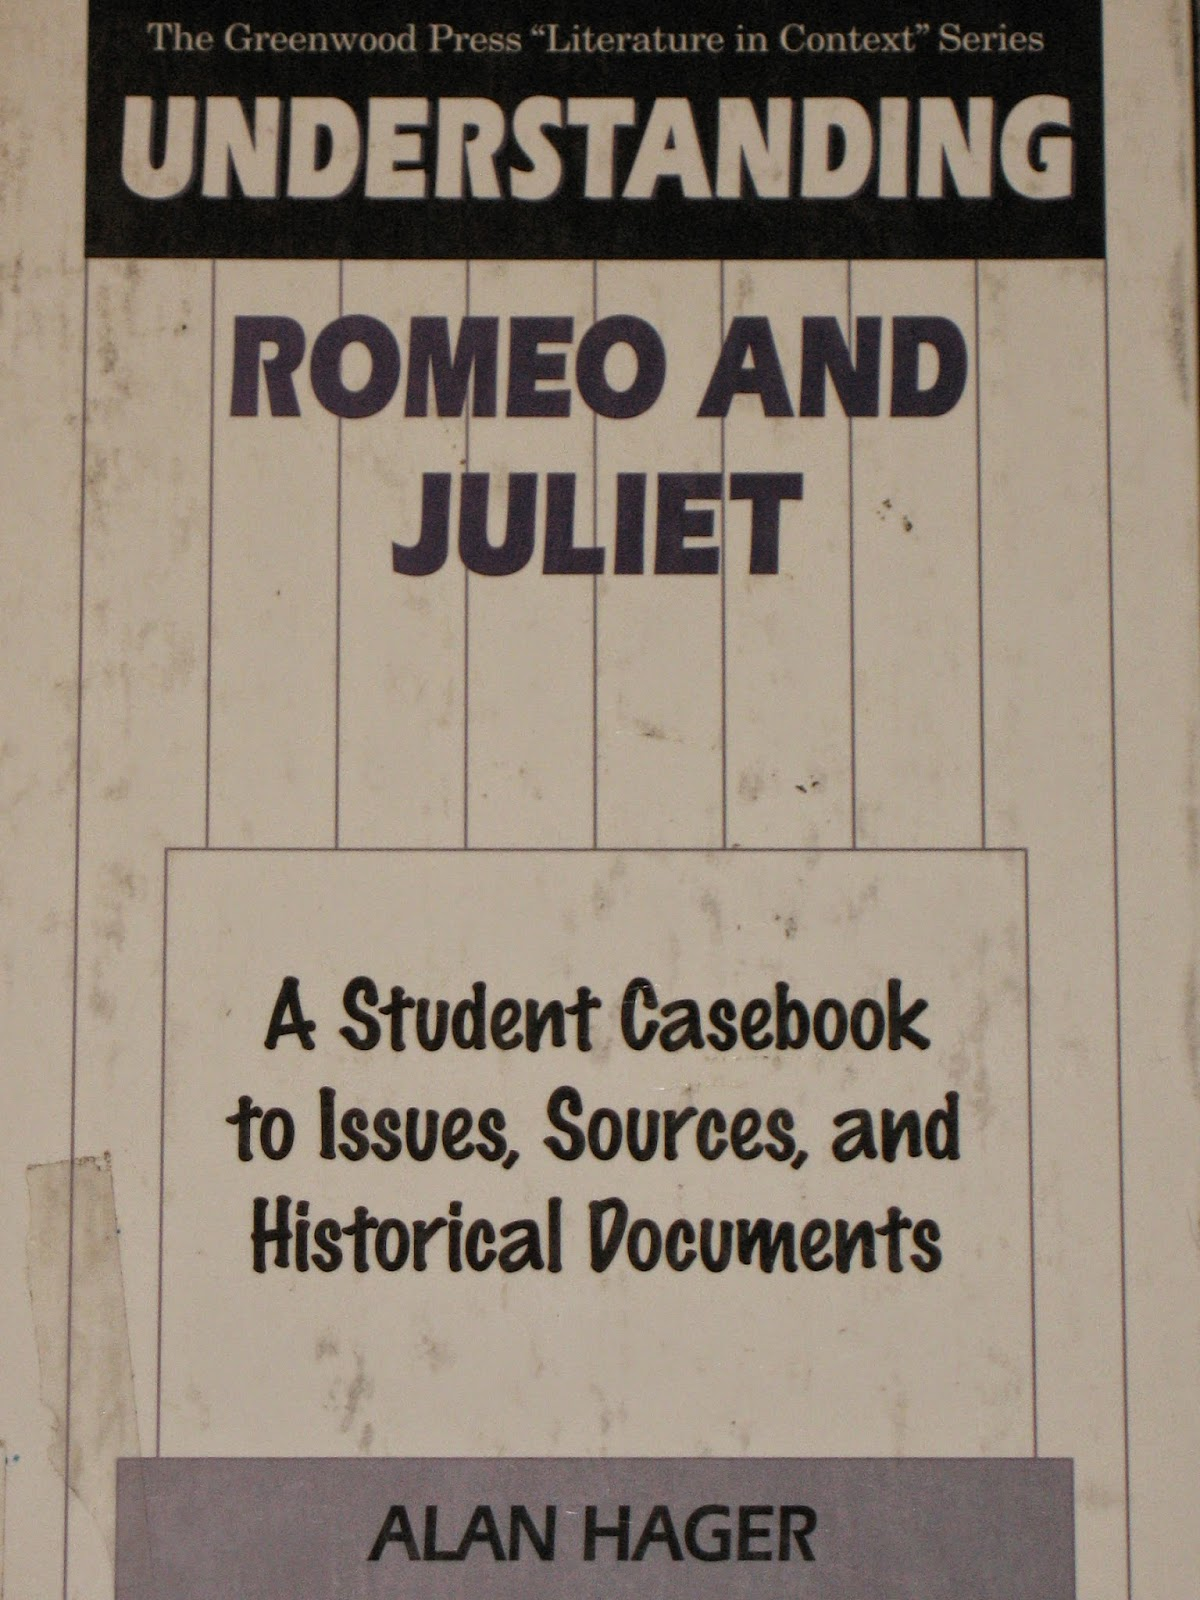 Romeo and juliet historical context essay